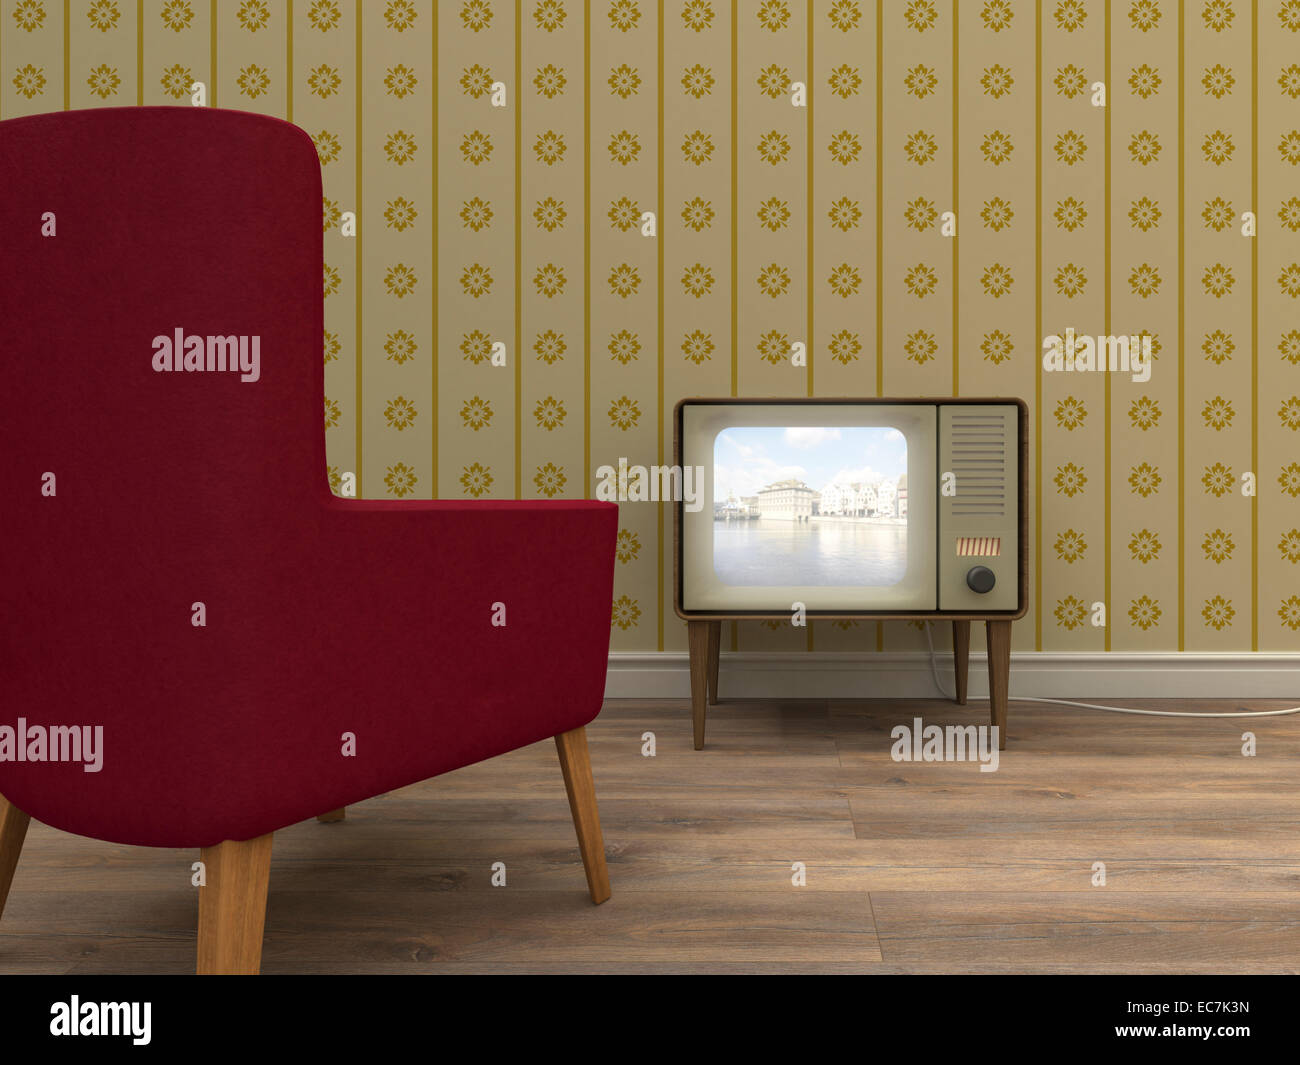 Old television and red armchair in a retro styled living room - Stock Image